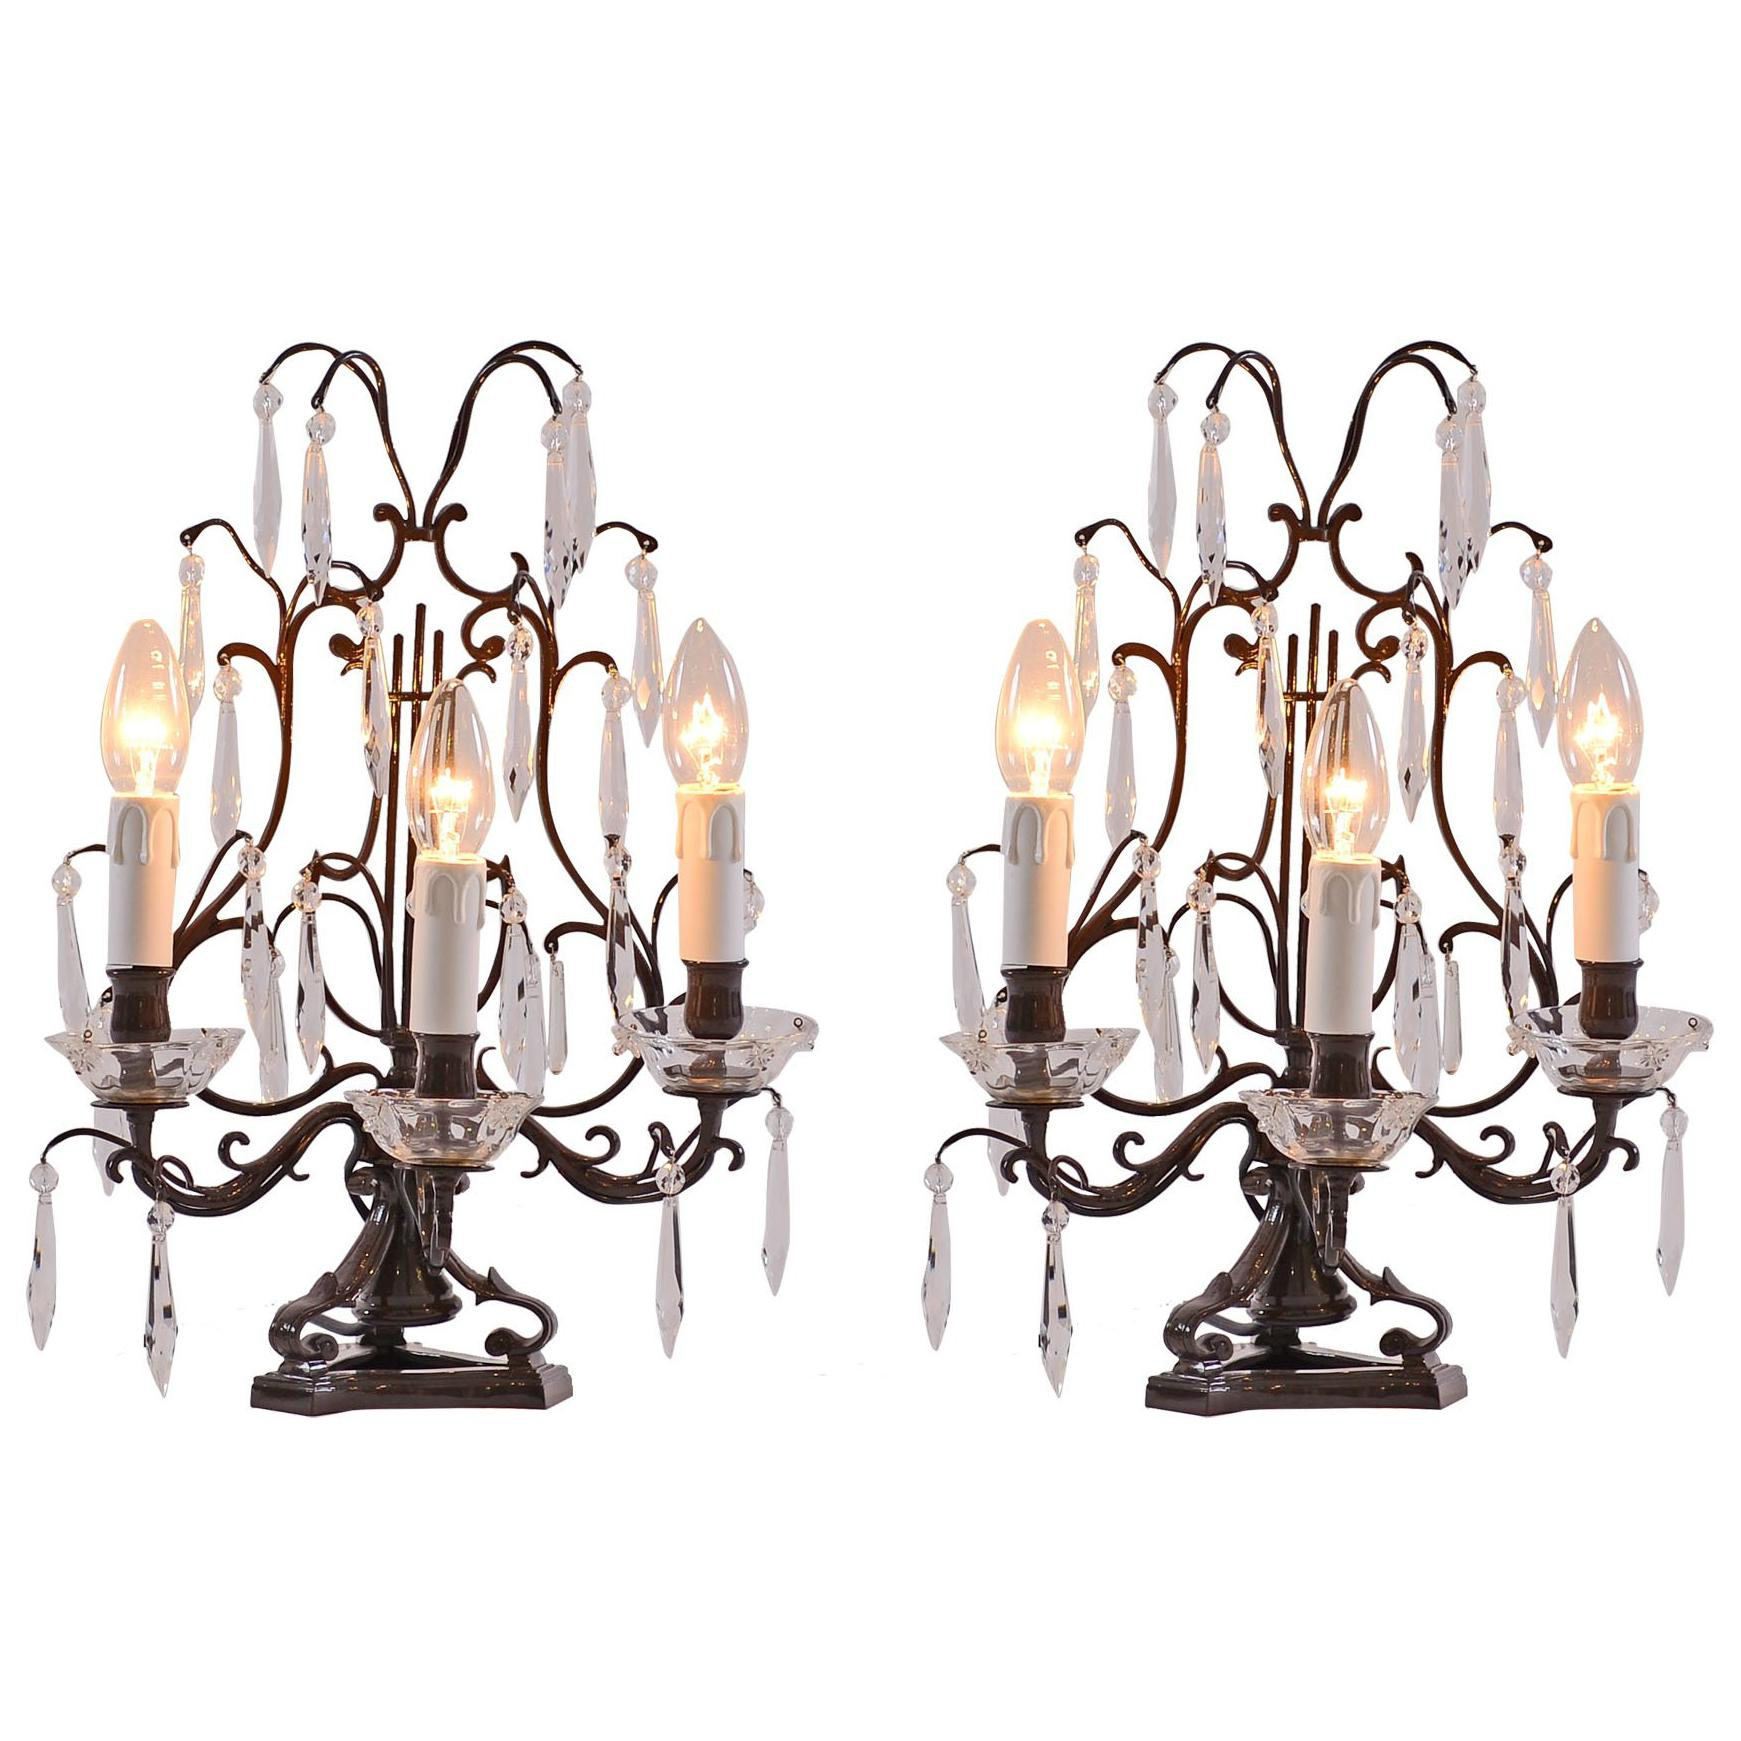 Pair of Original Jugendstil Table Lamps Early 20th century